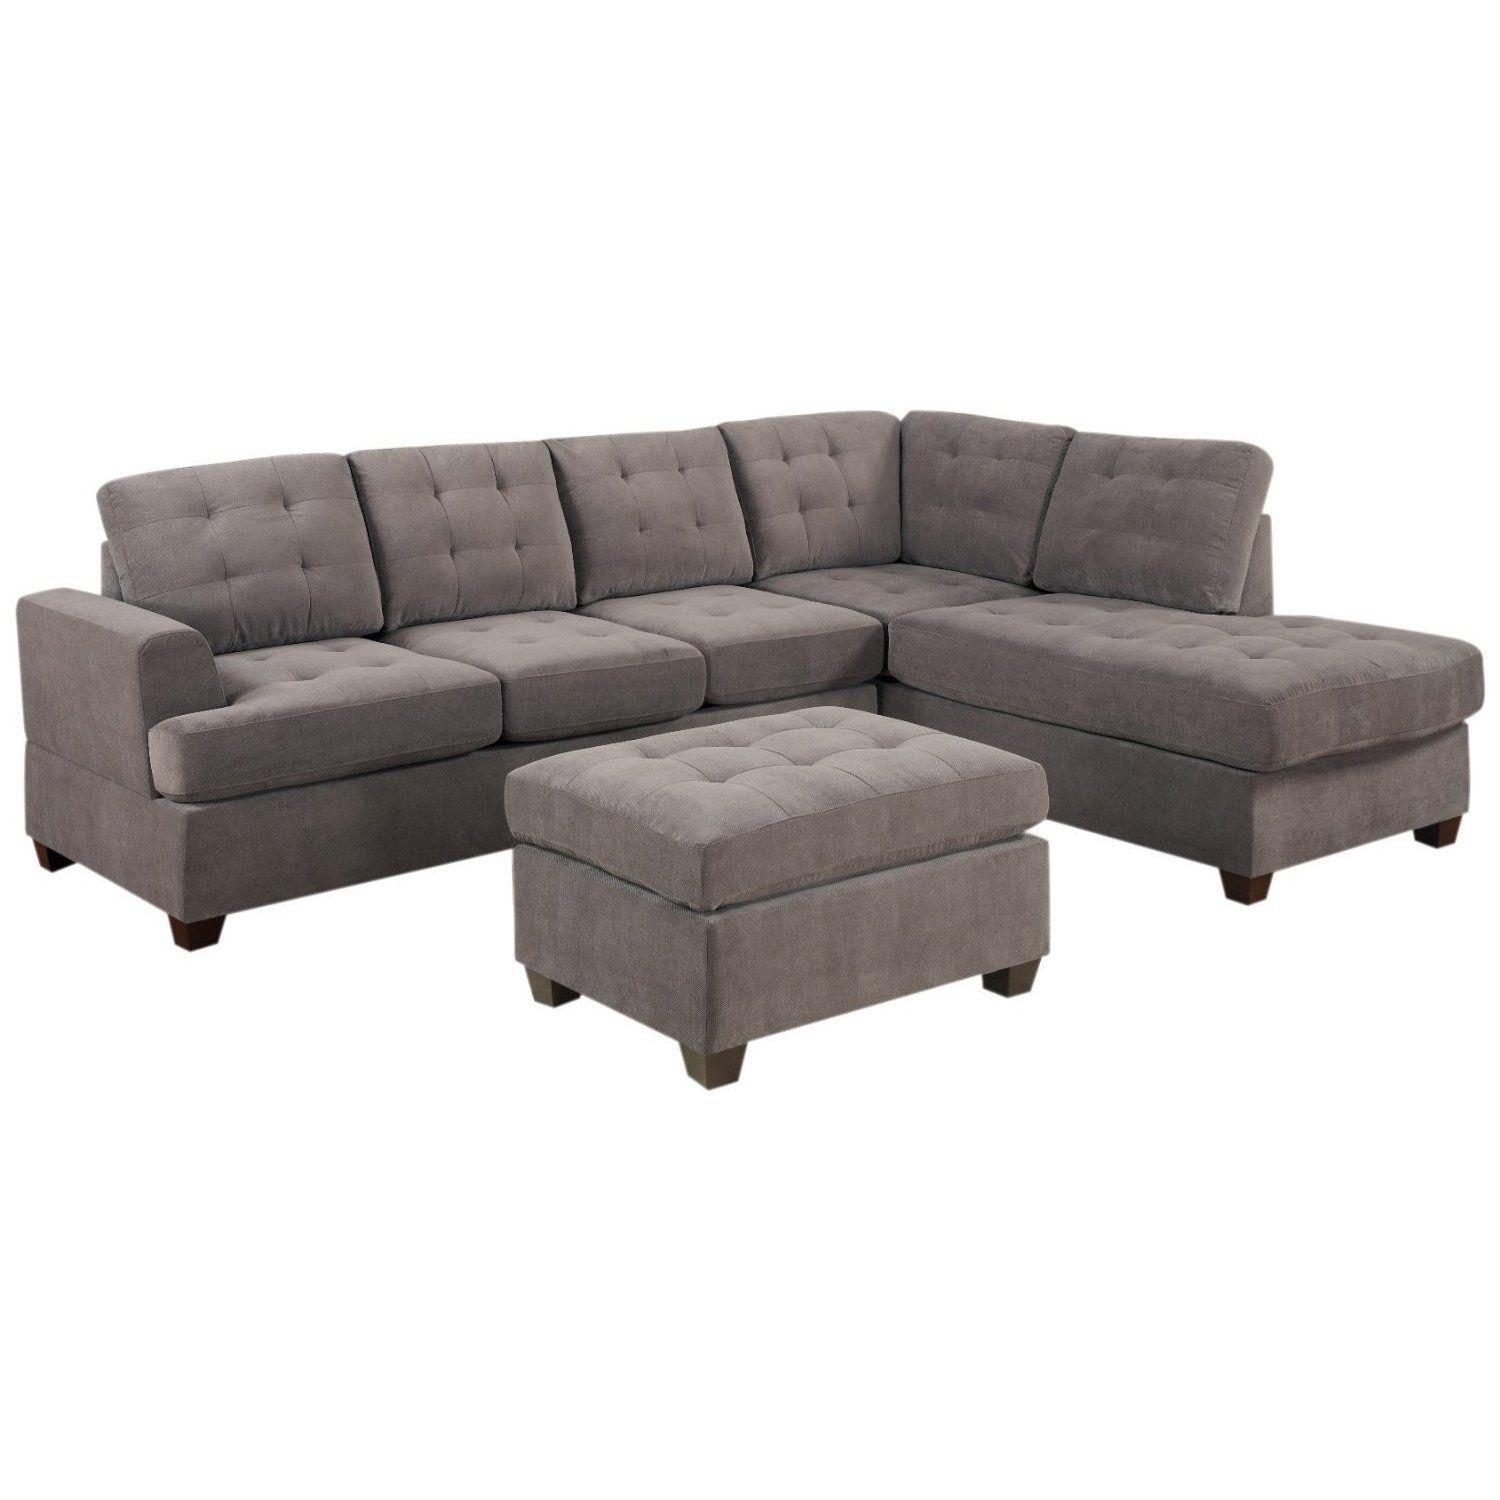 3 piece Modern Grey Microfiber Reversible Sectional Sofa with